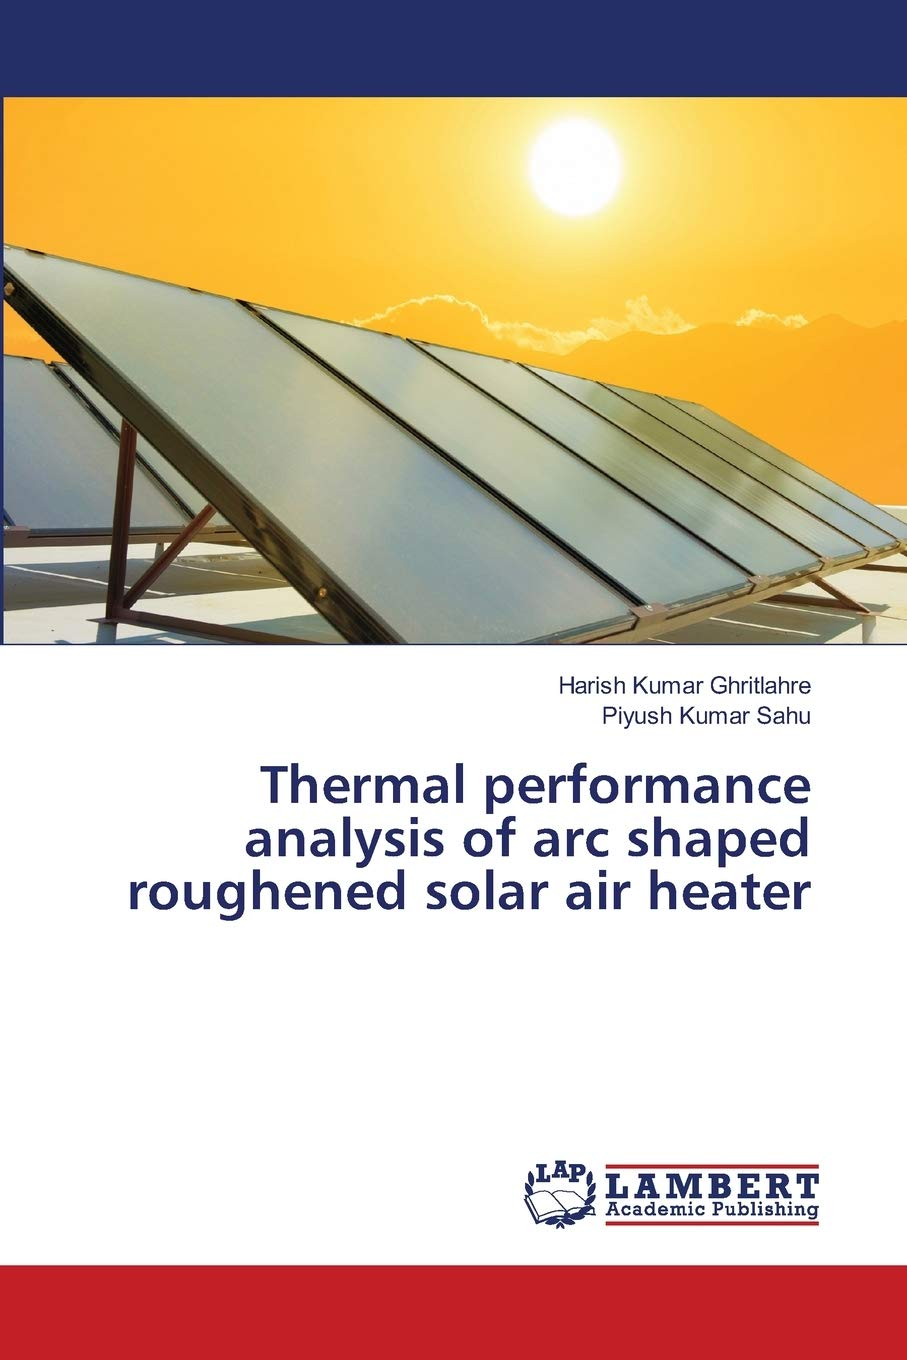 Thermal performance analysis of arc shaped roughened solar air heater